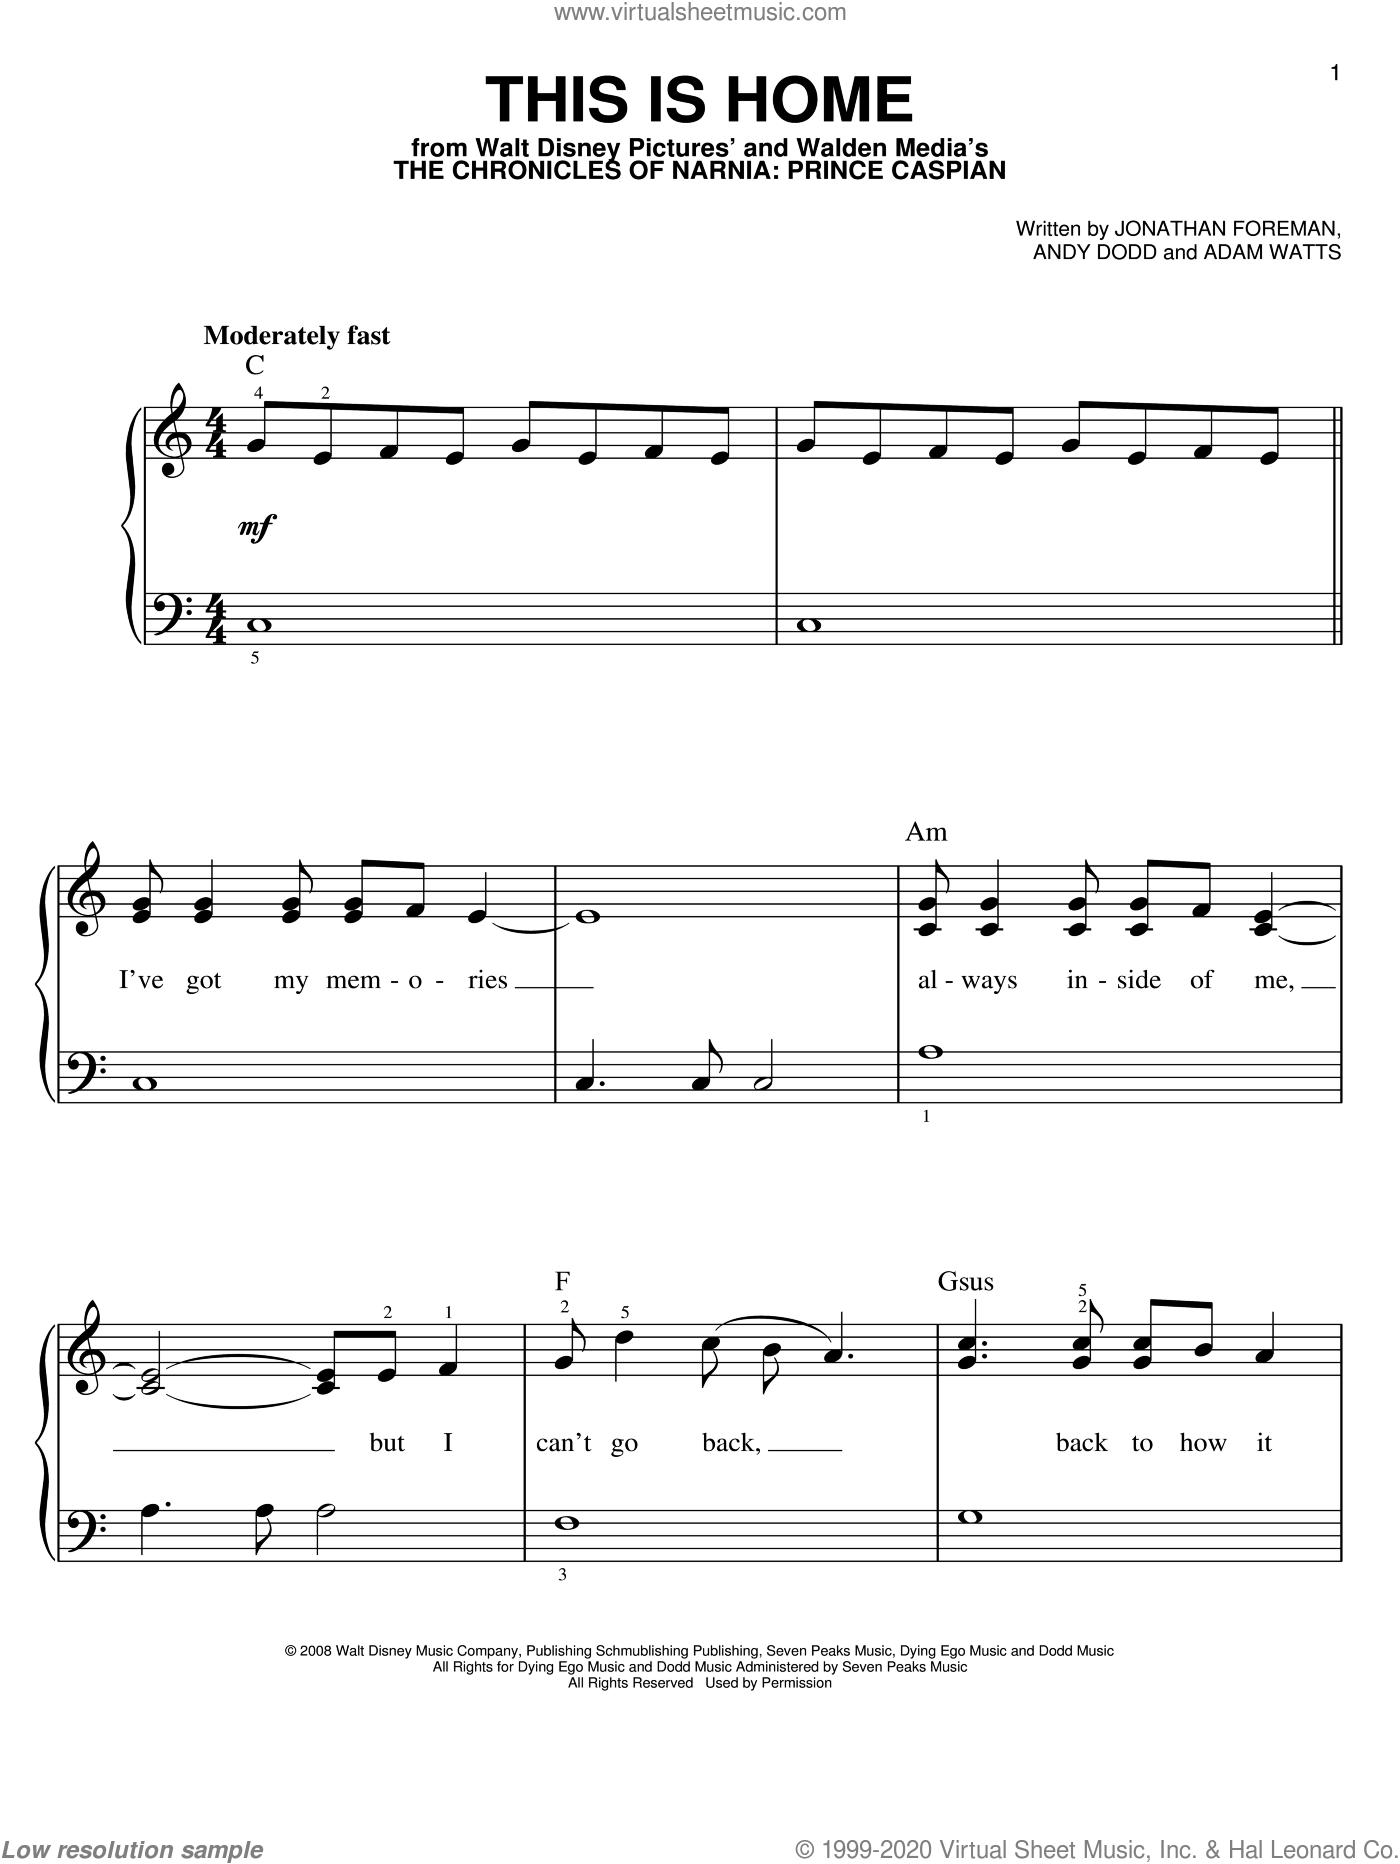 This Is Home sheet music for piano solo (chords) by Jonathan Foreman